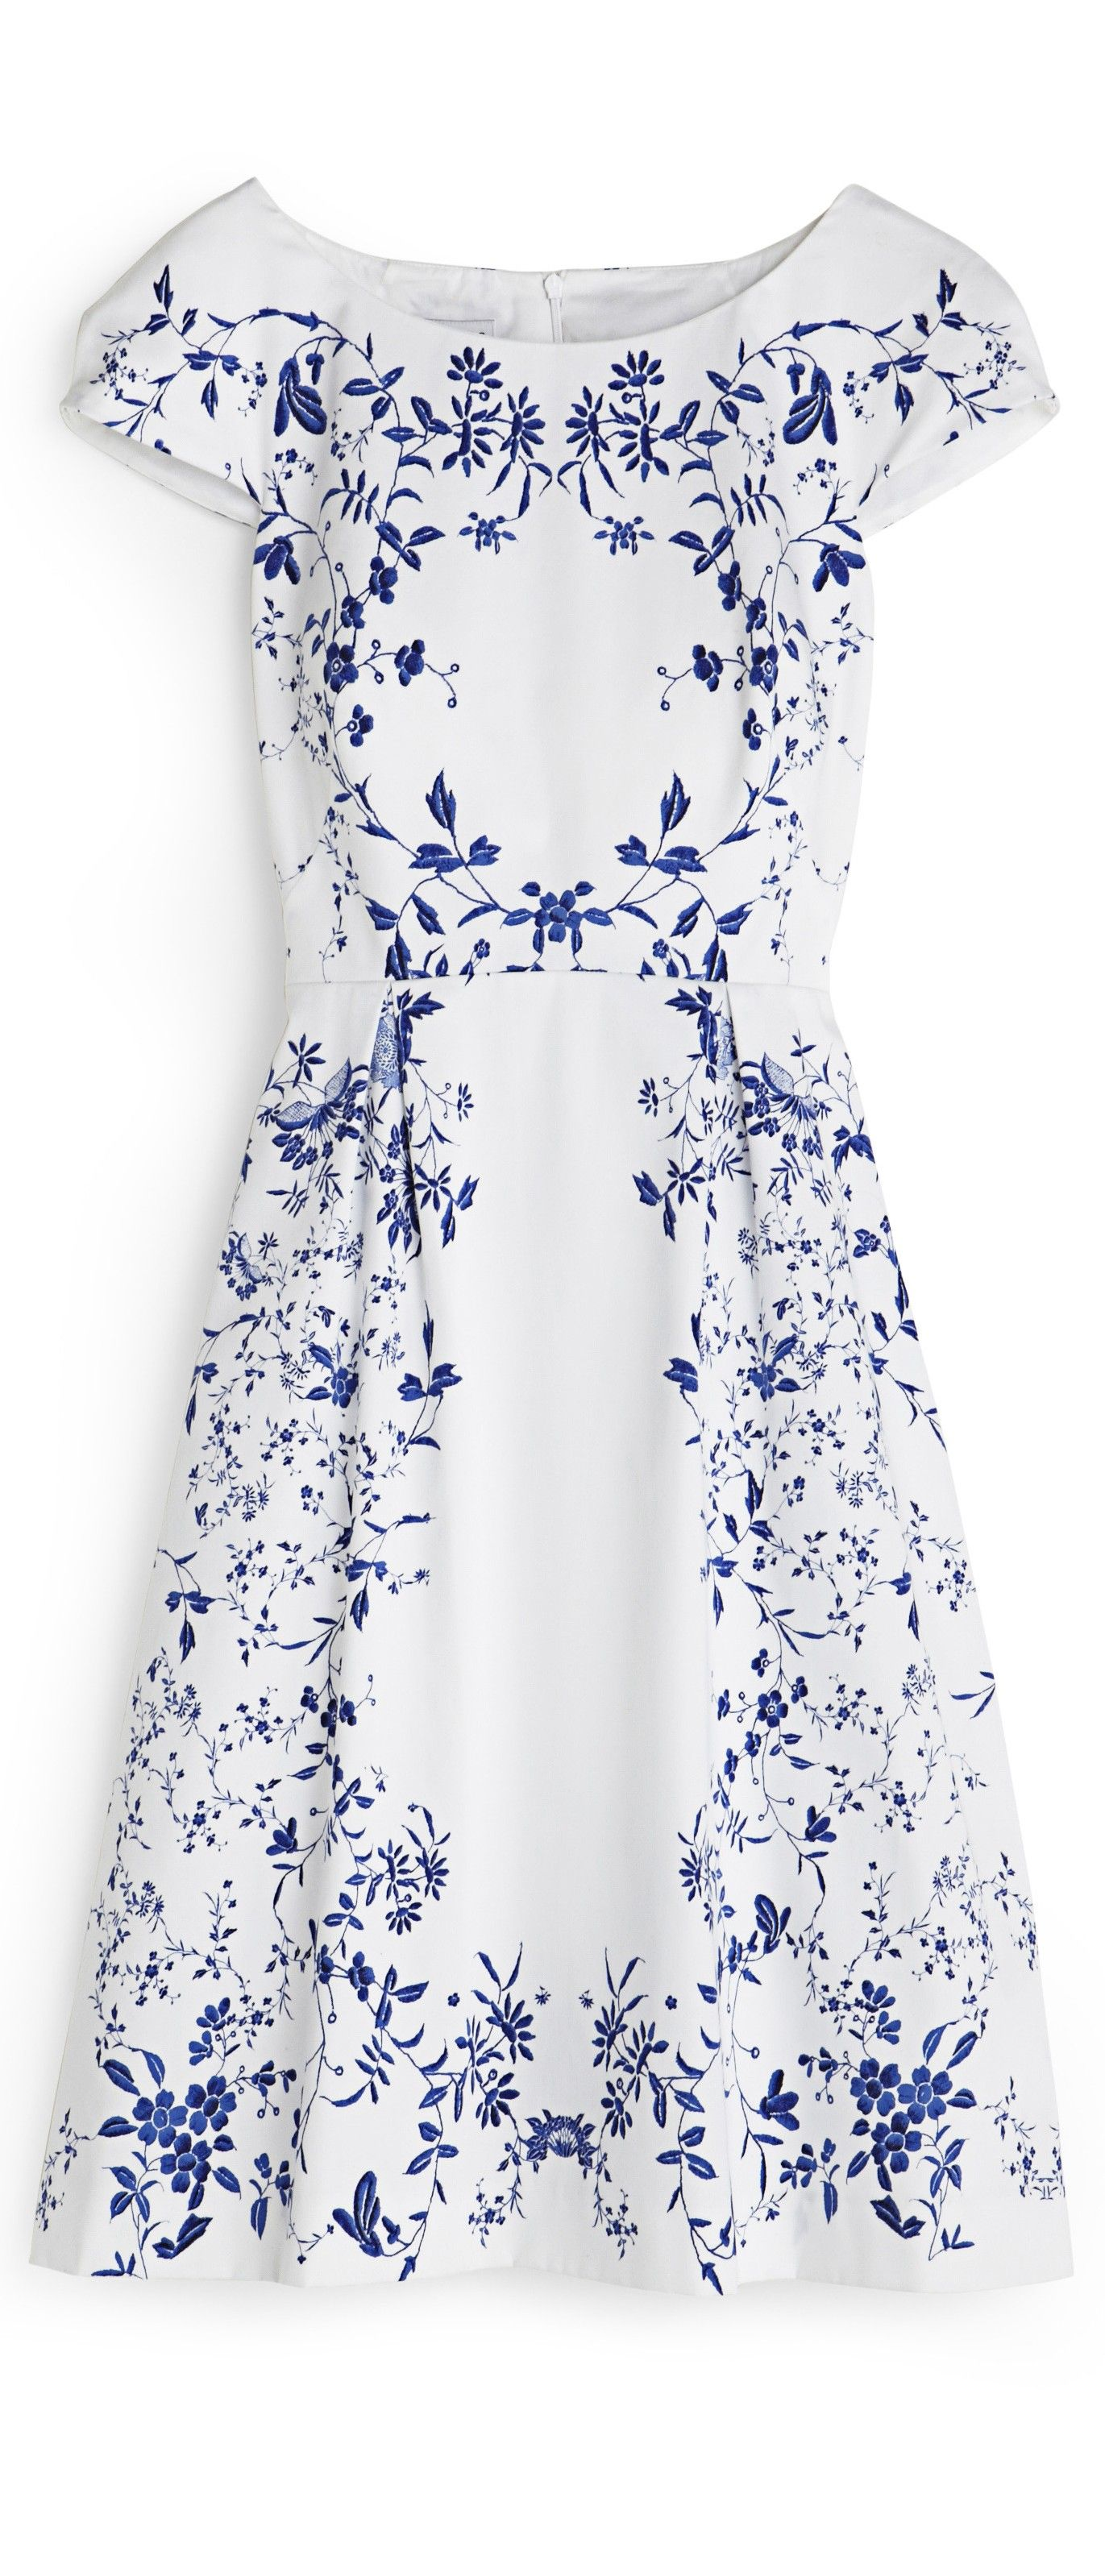 Blue and white floral wedding dress for older brides hobbs prshots blue and white floral wedding dress for older brides hobbs prshots izmirmasajfo Image collections